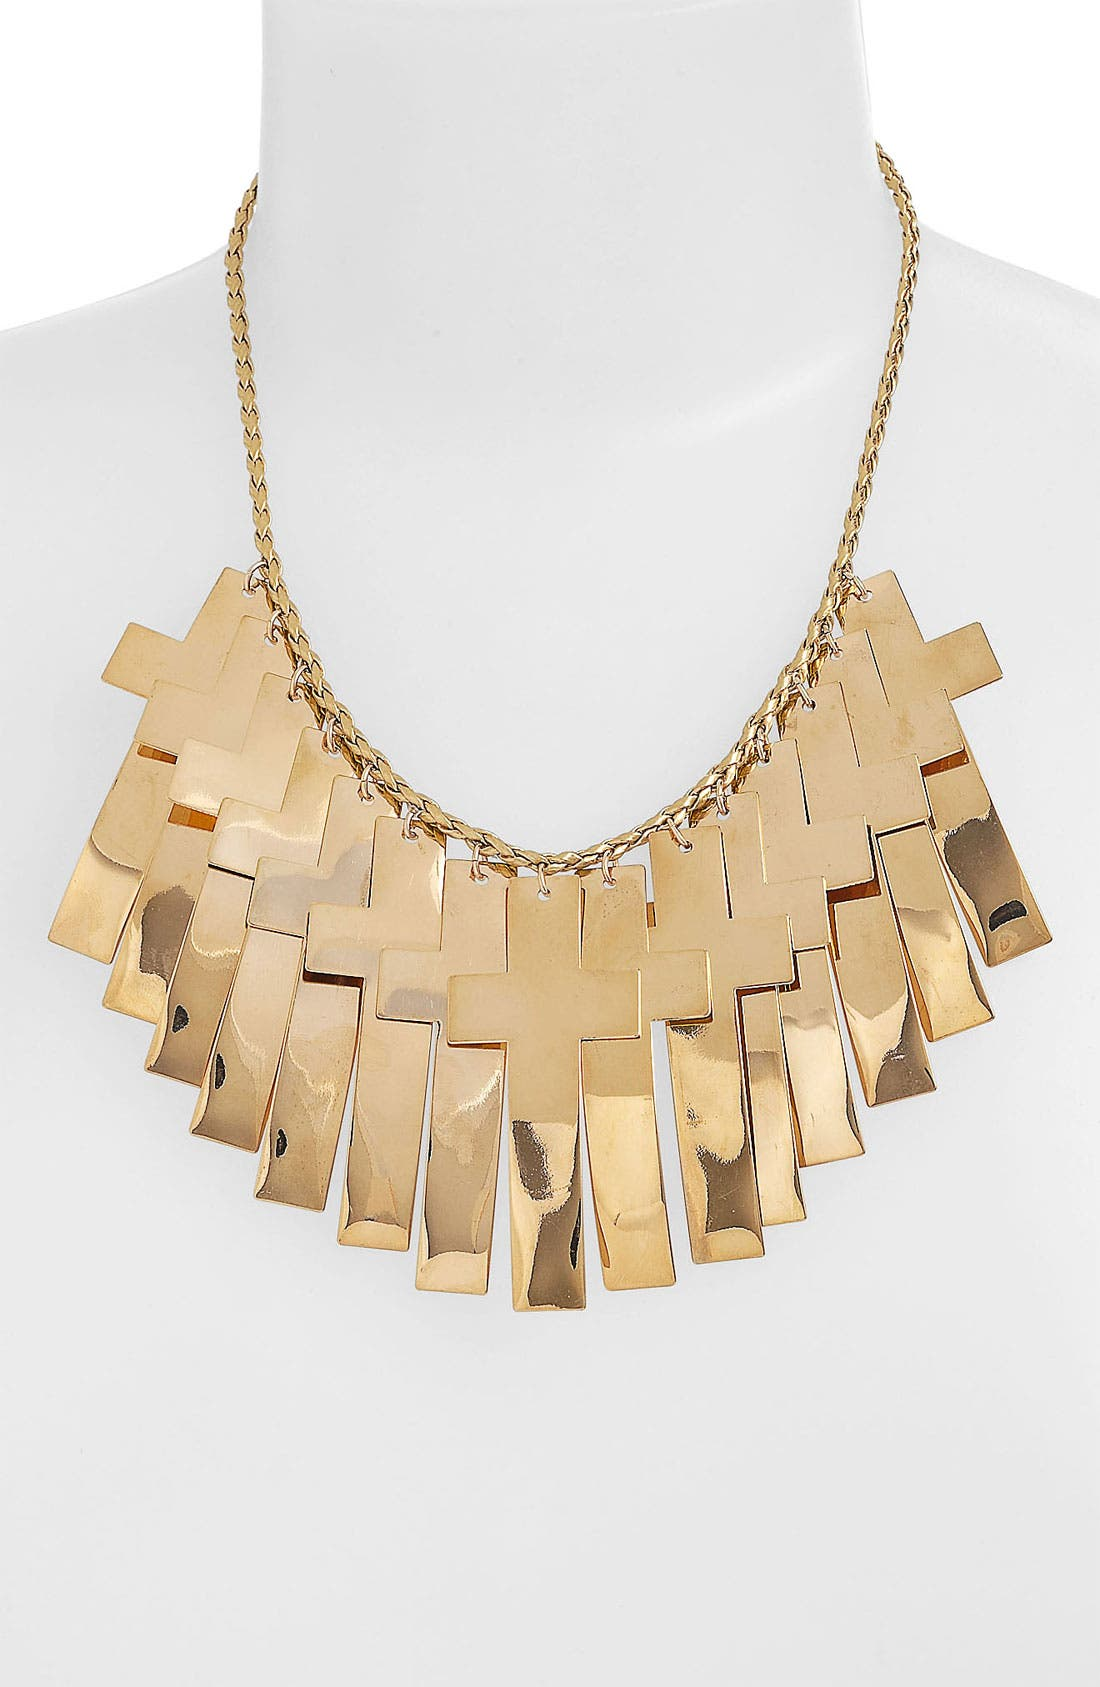 Main Image - Belle Noel 'Empyrean' Statement Necklace